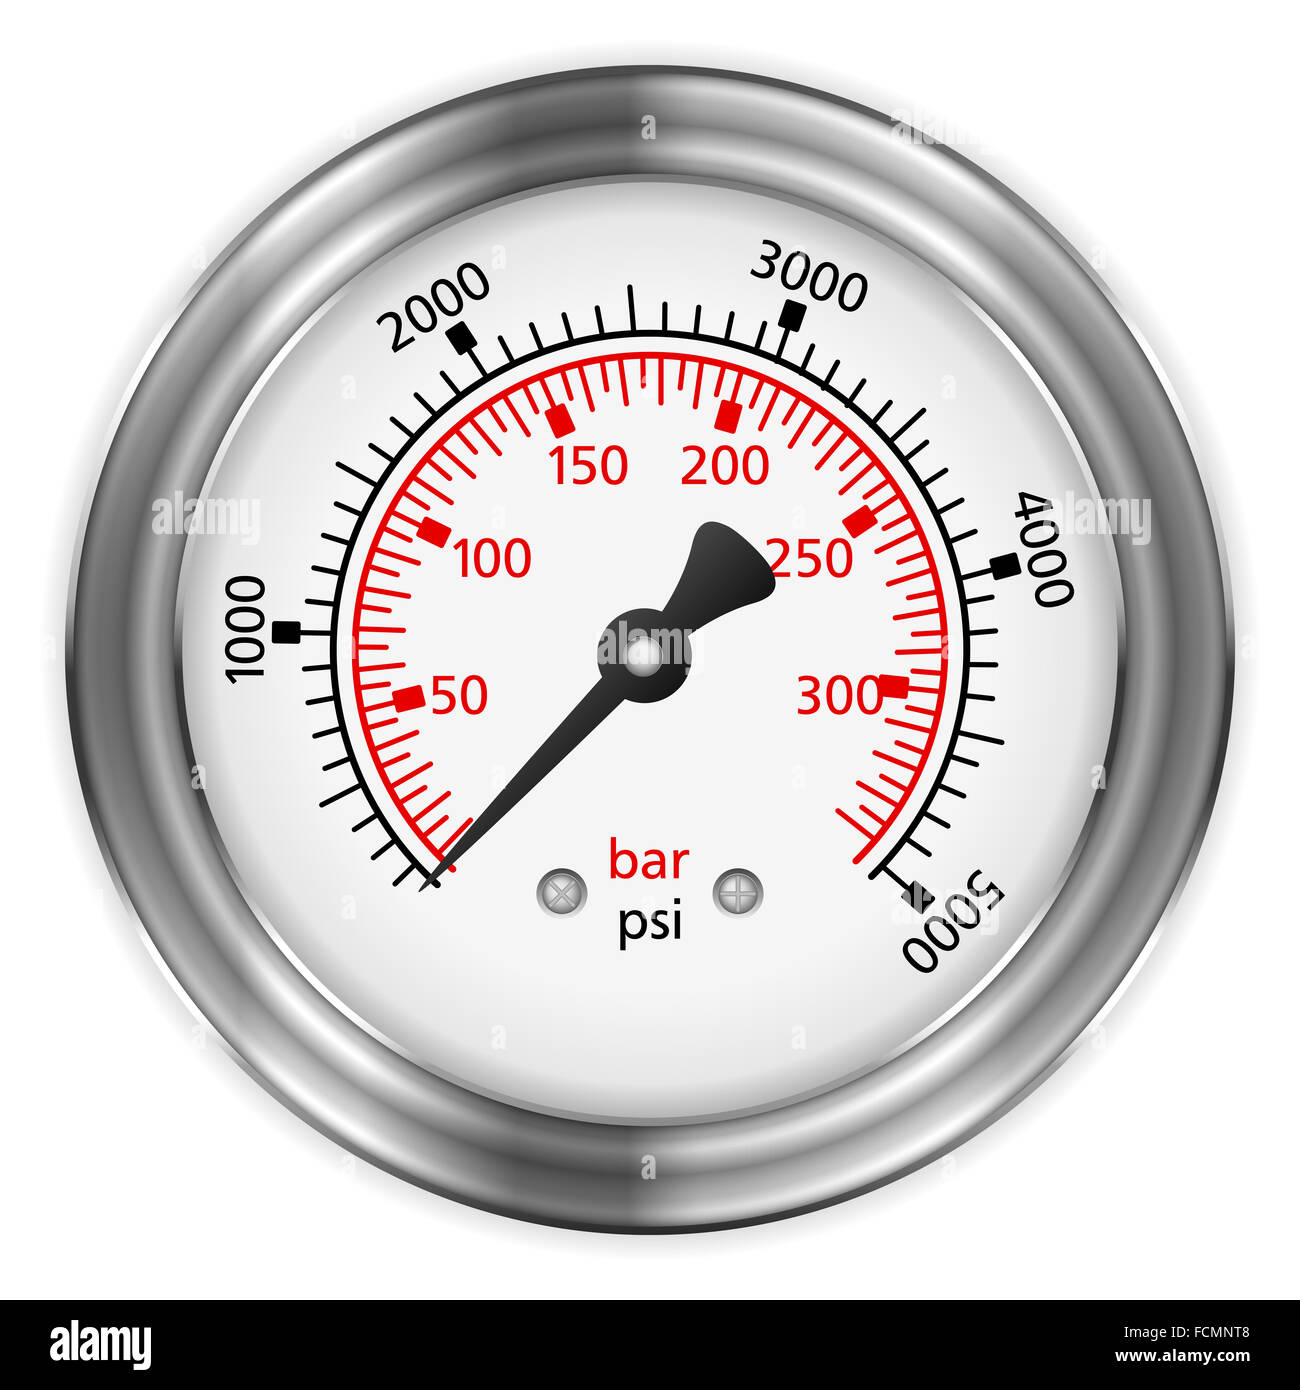 Manometer on a black background. - Stock Image